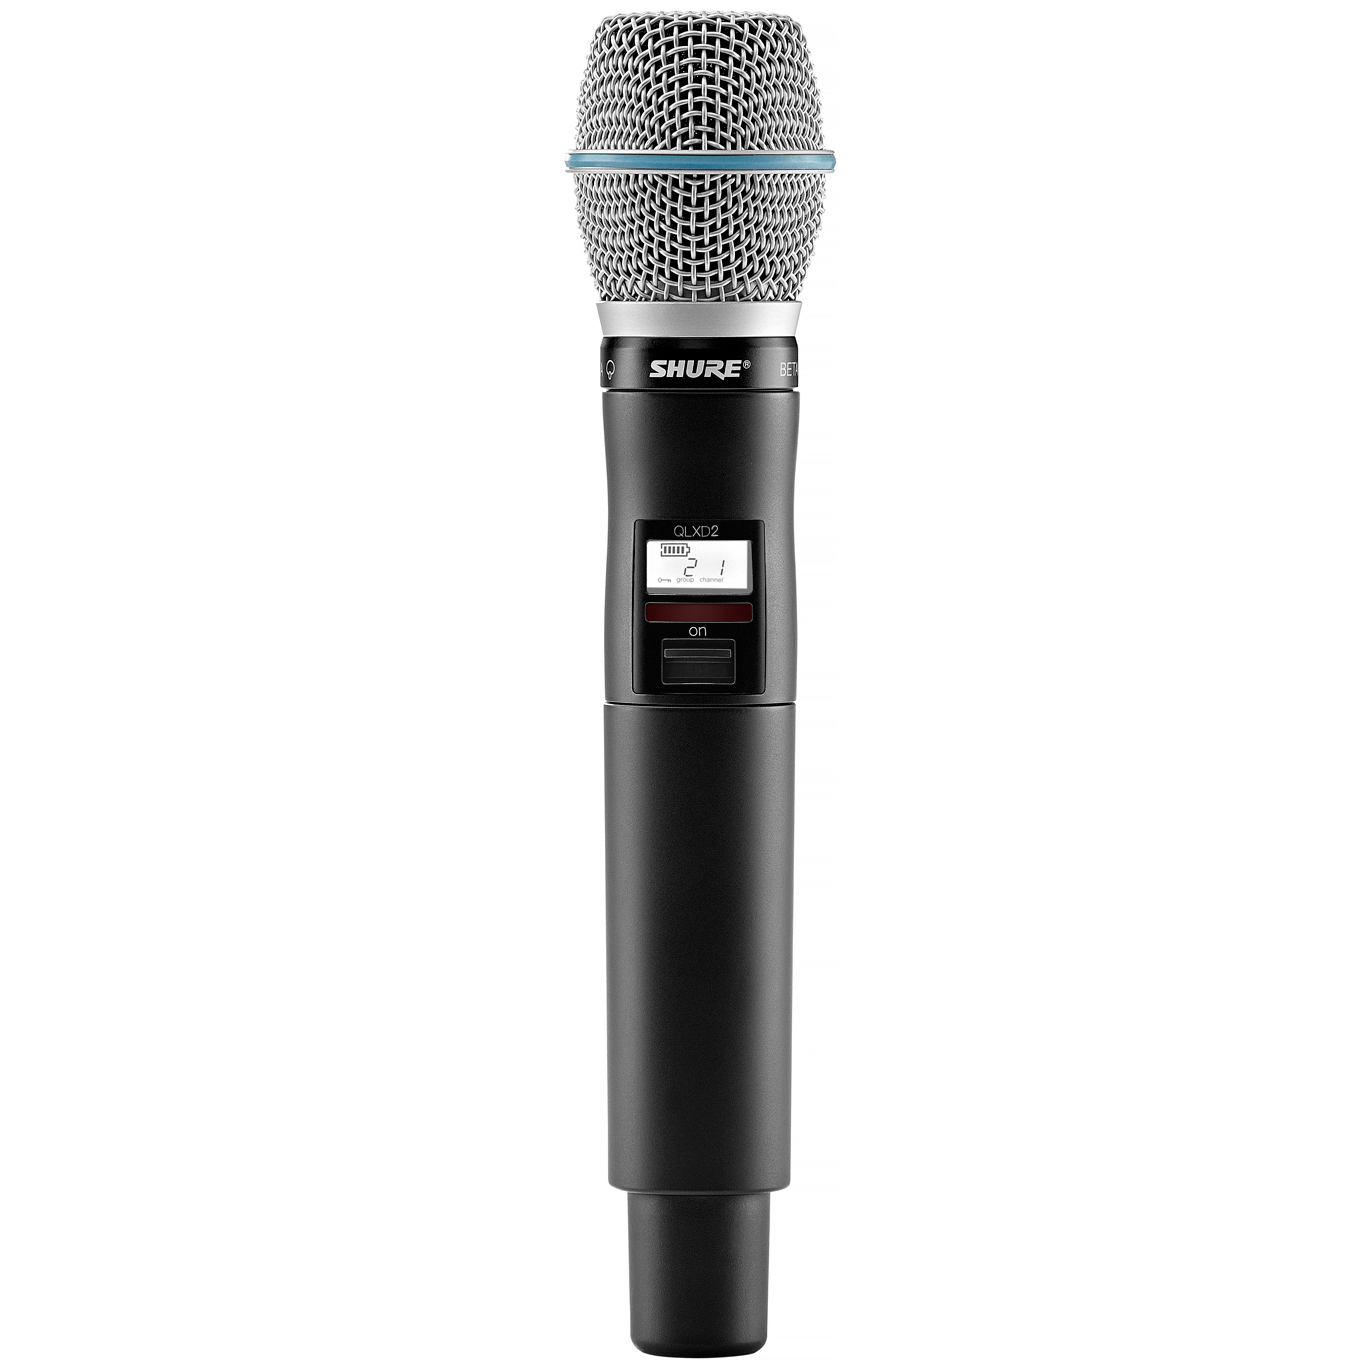 shure qlxd24 b87a handheld wireless microphone system. Black Bedroom Furniture Sets. Home Design Ideas